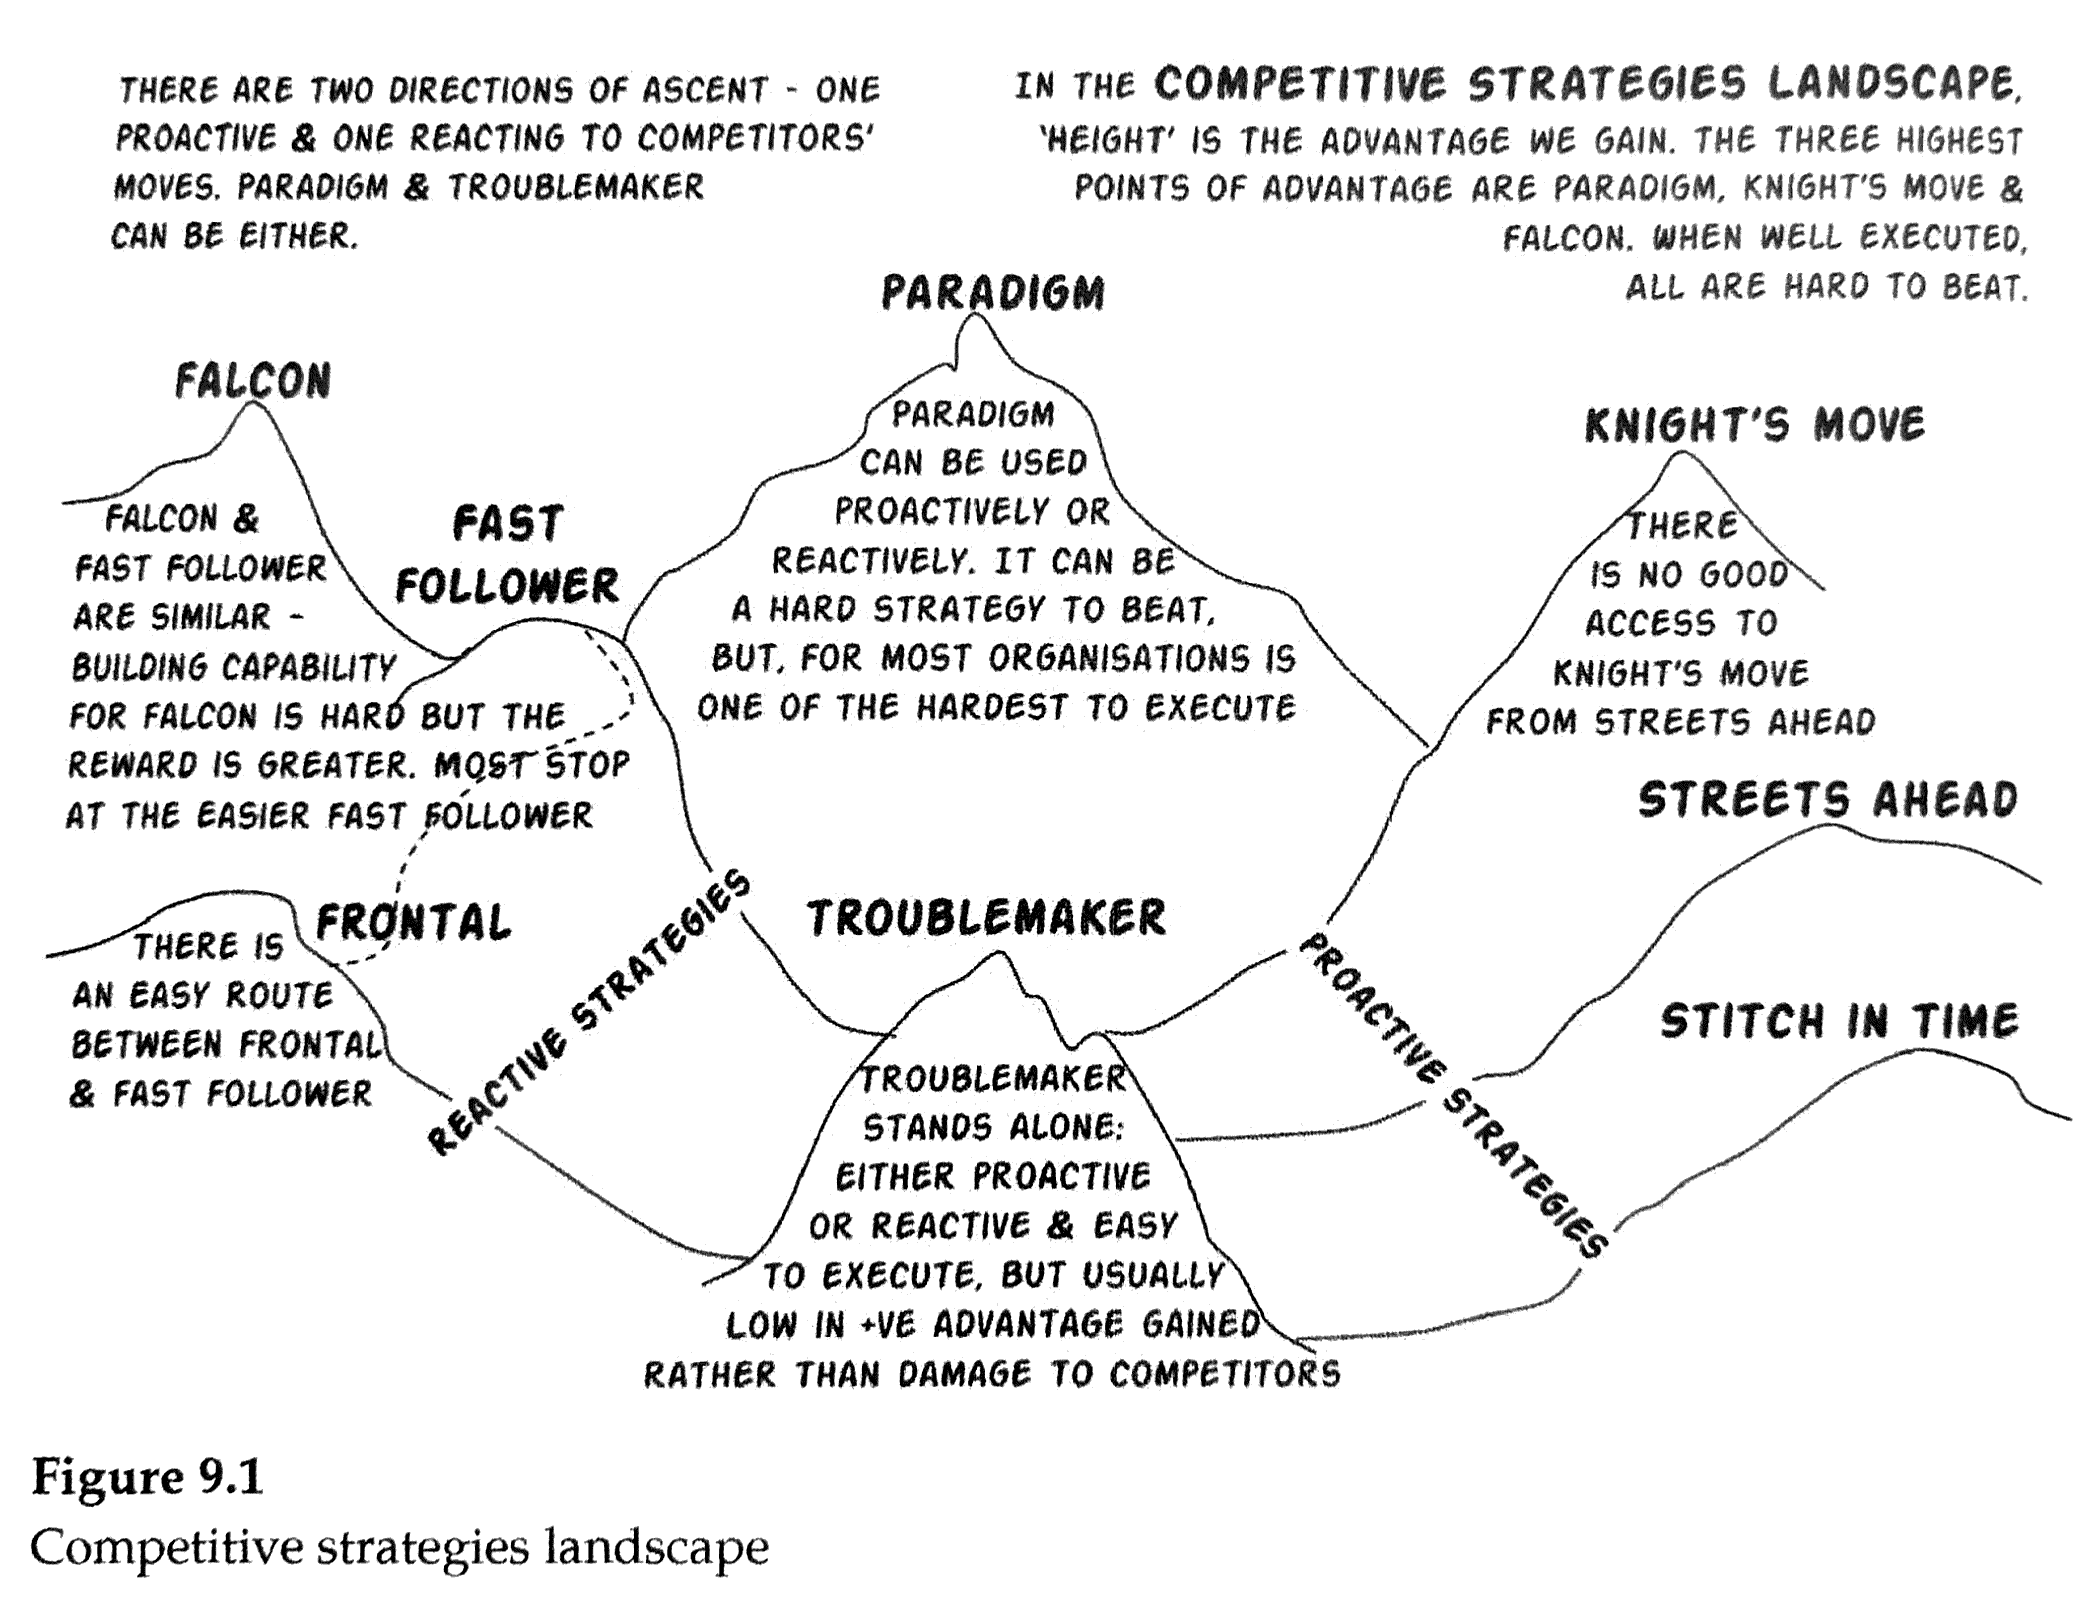 competitive-strategies-landscape.jpg